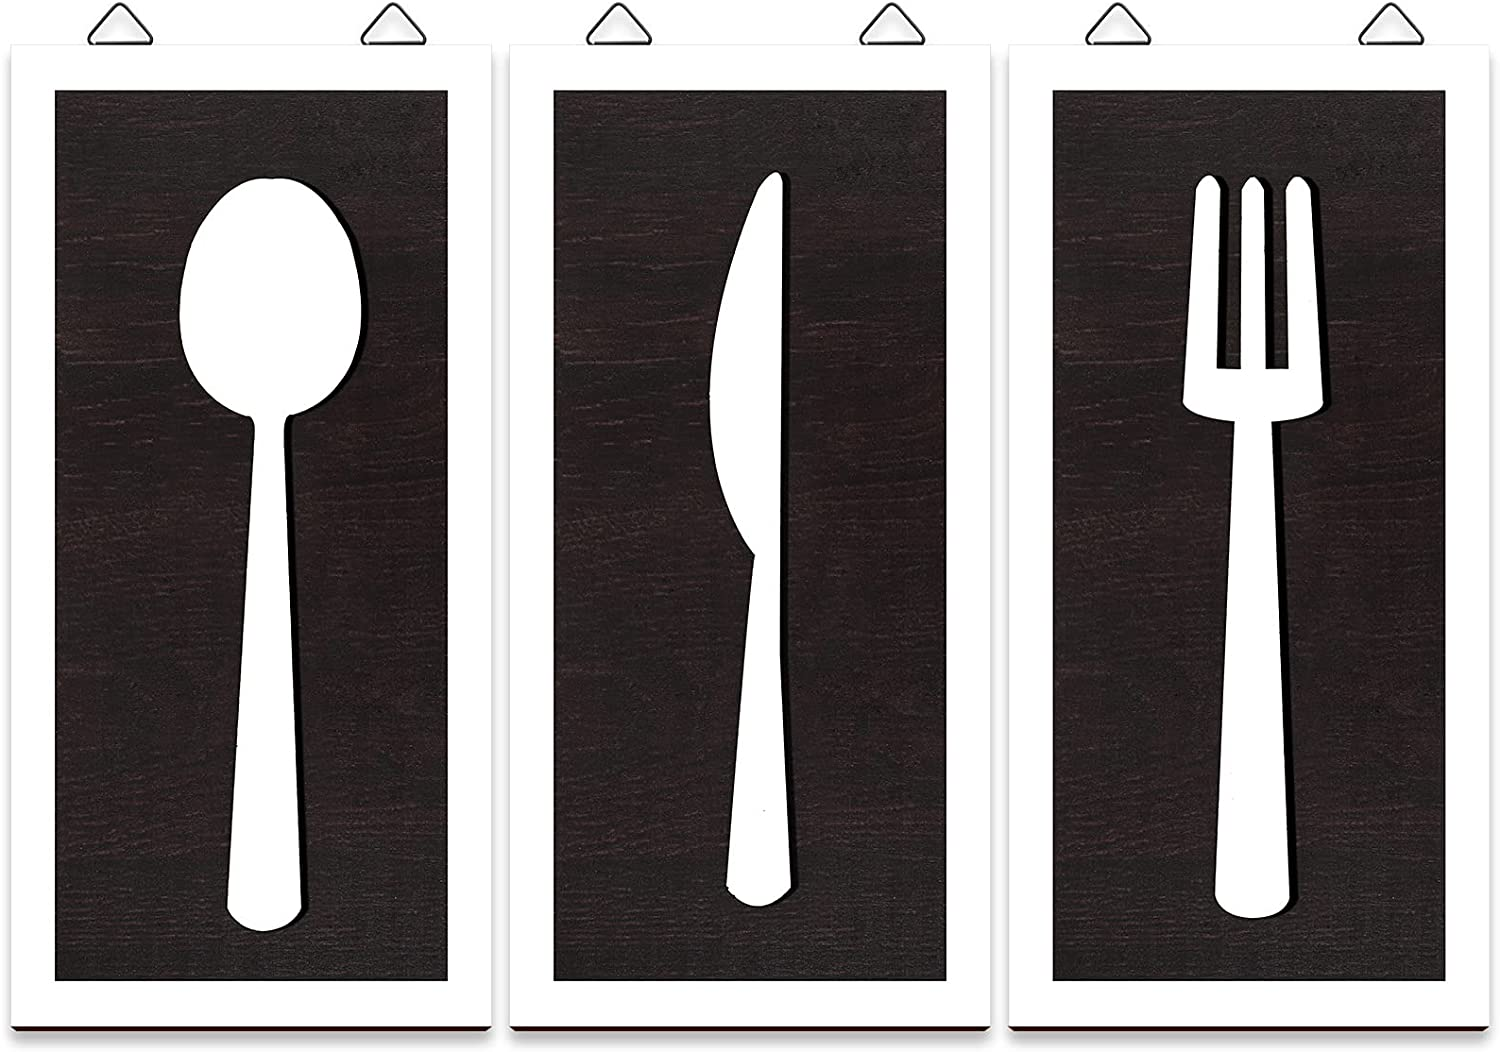 3 Pieces Rustic Fork Spoon Knife Wall Decor, Wooden Kitchen Wall Hanging Sign, Set of Farmhouse Wood Fork Spoon Knife Sign for Home Kitchen Dining Living Room Restaurant Cafe